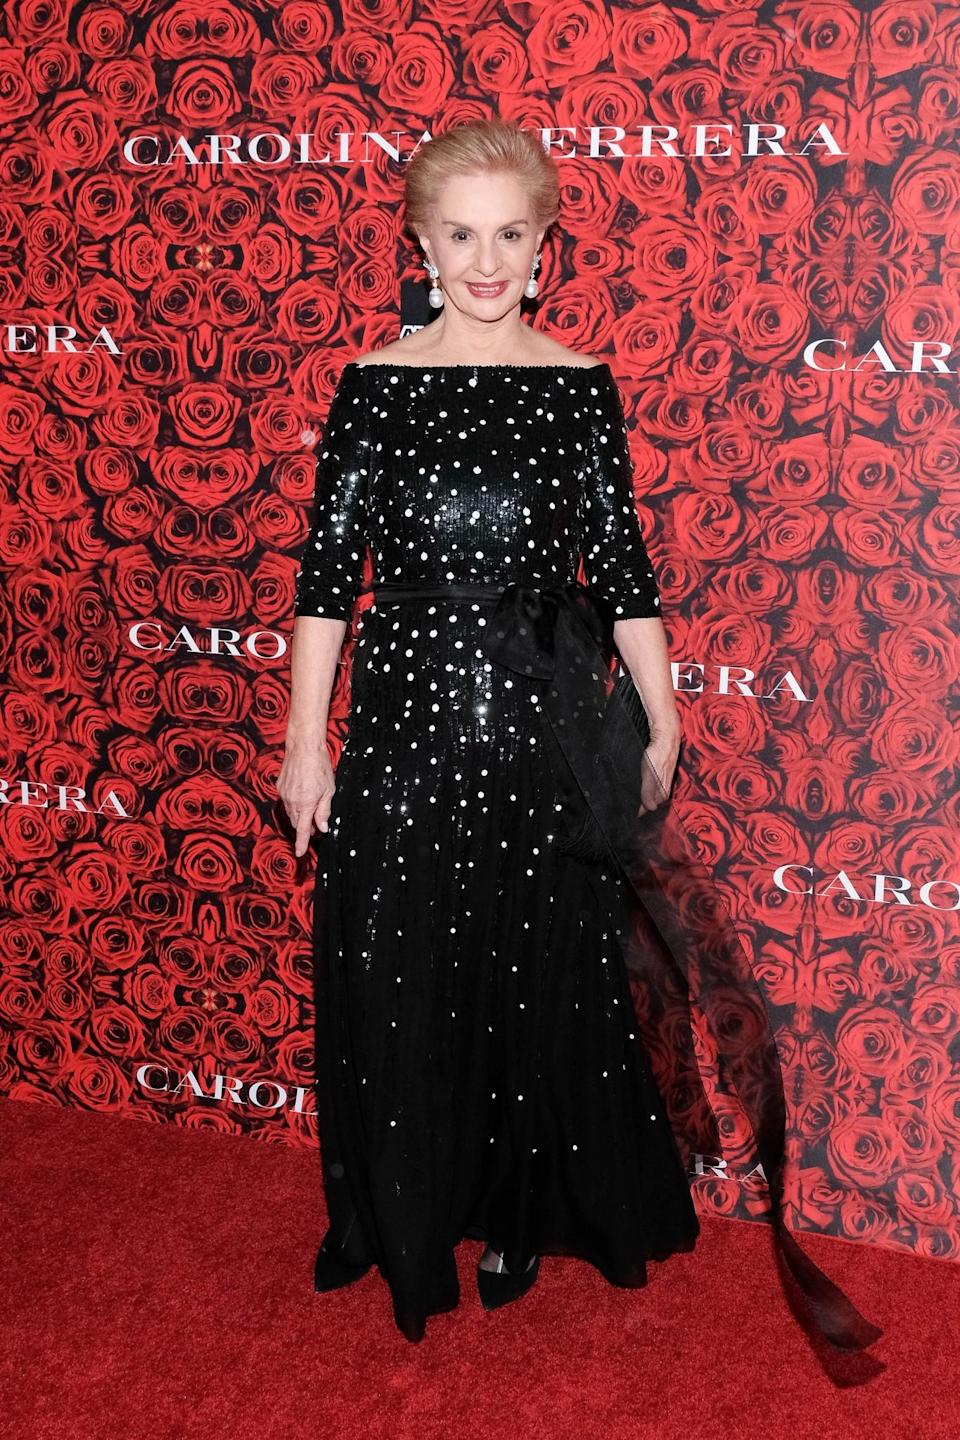 <p>Designer Caroline Herrera looked breathtaking in this off-the-shoulder frock. Inspiration to the max. [Photo: Getty] </p>